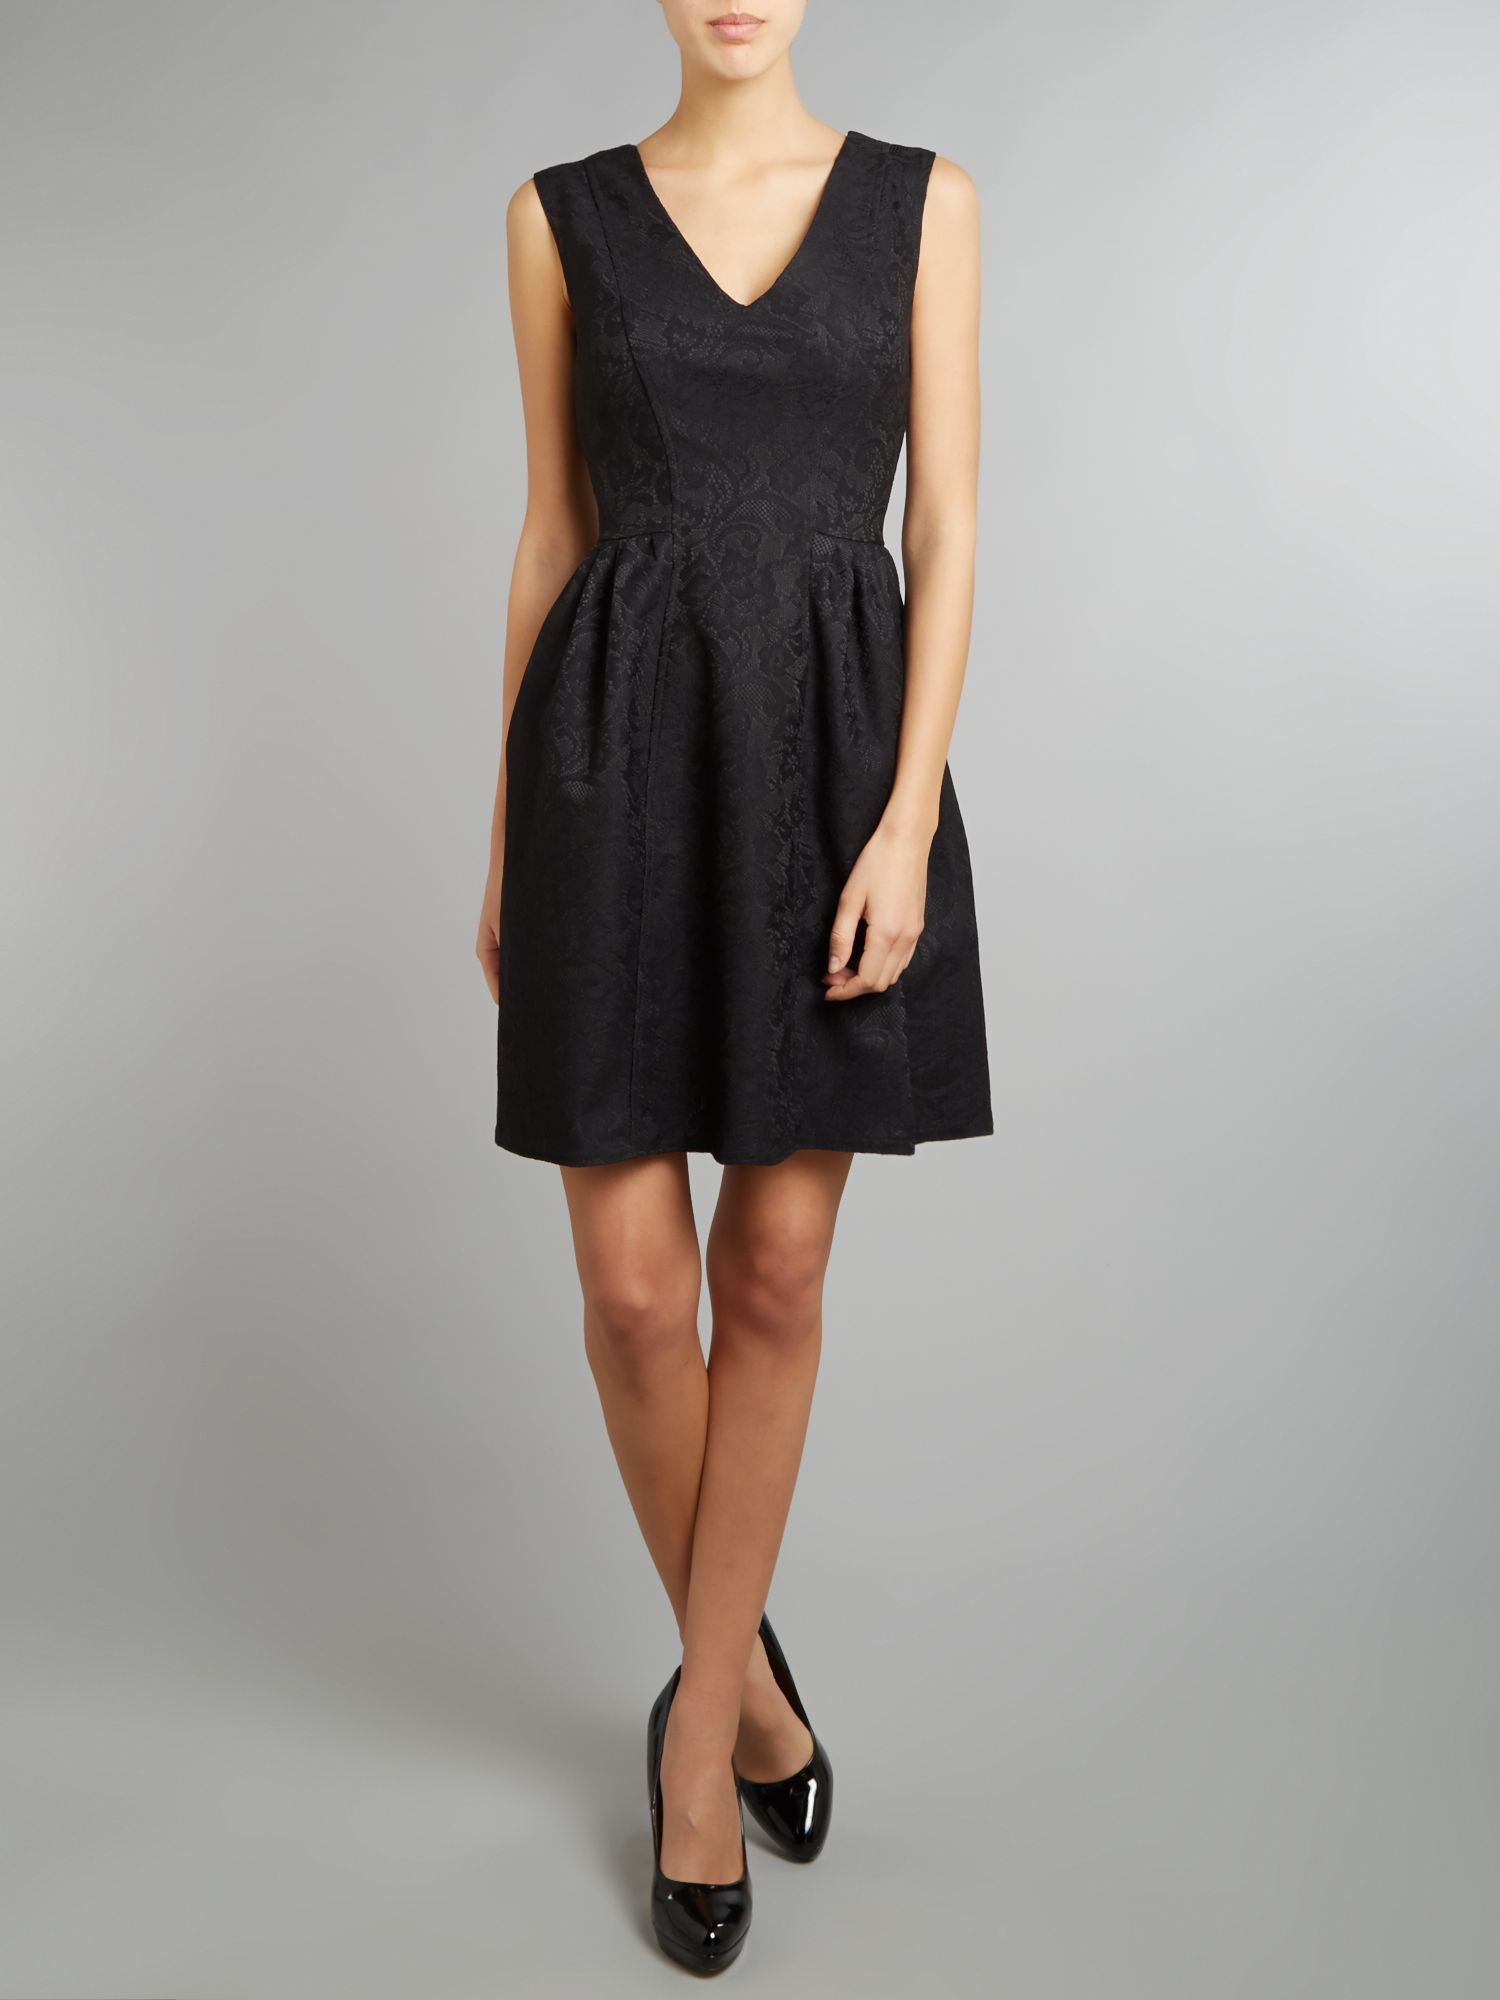 Lace v neck gathered dress